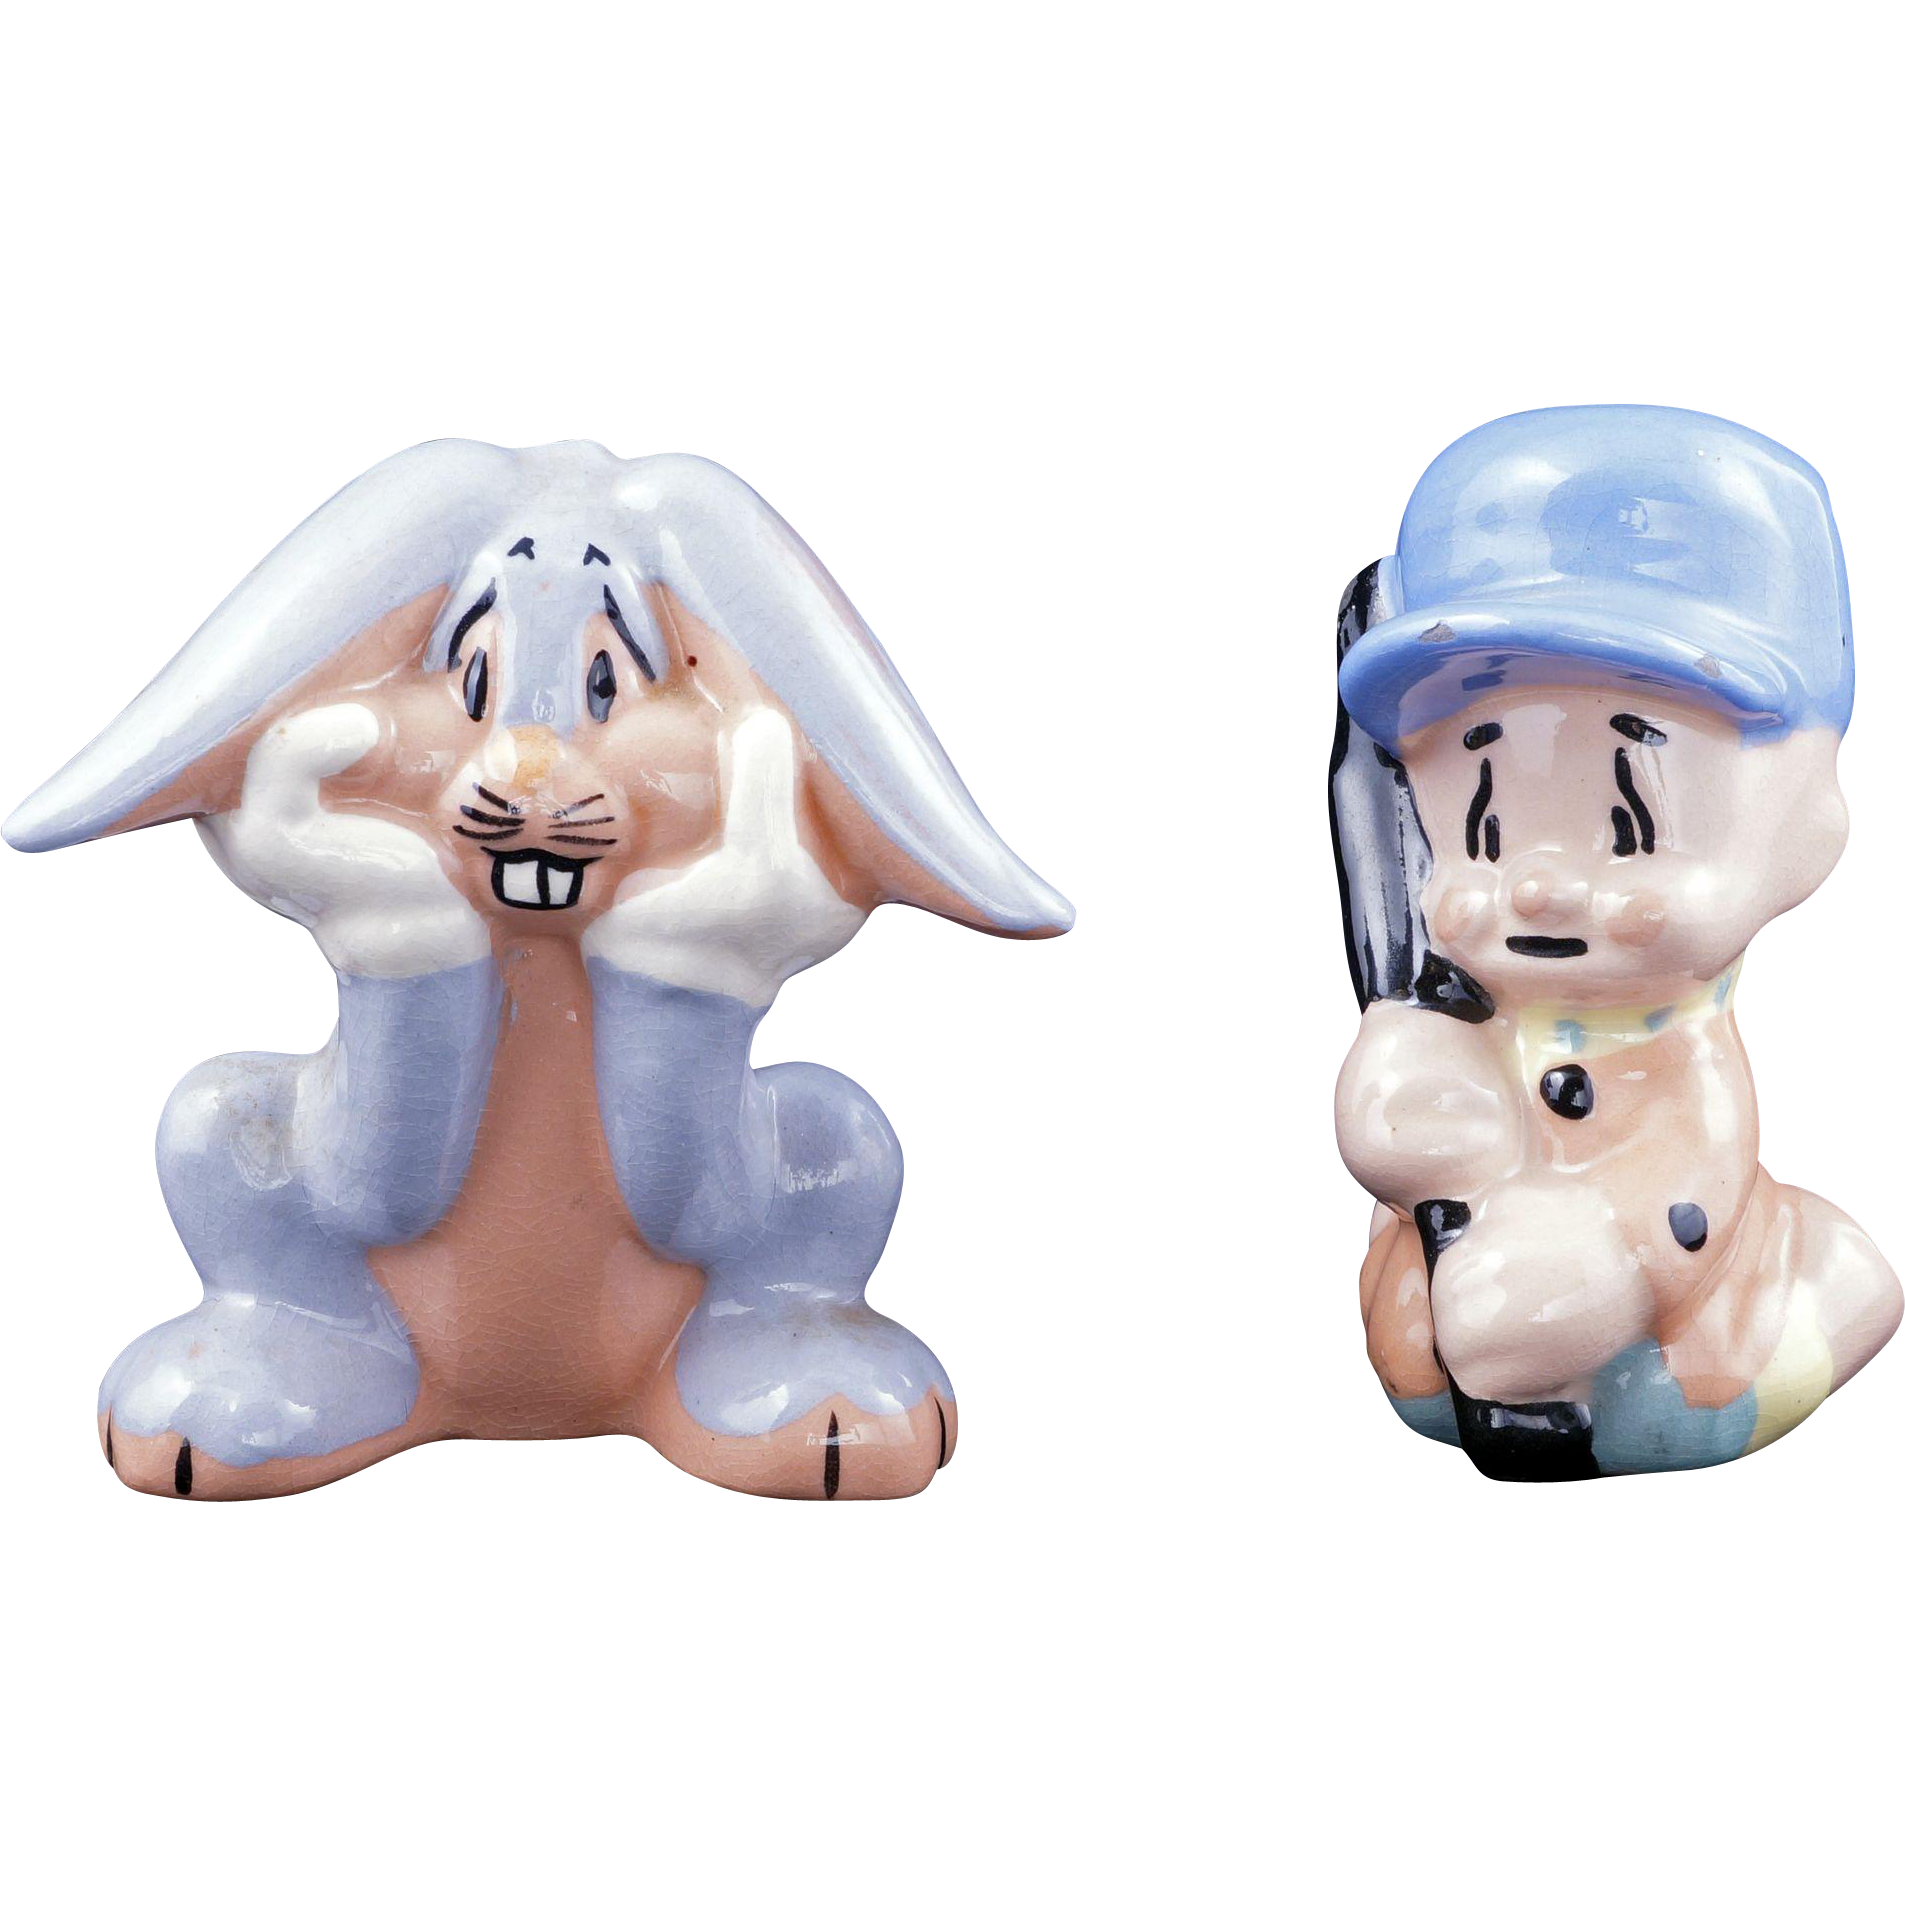 ceramic elmer fudd and bugs bunny figurines by evan k shaw warner from bearraven on ruby lane. Black Bedroom Furniture Sets. Home Design Ideas